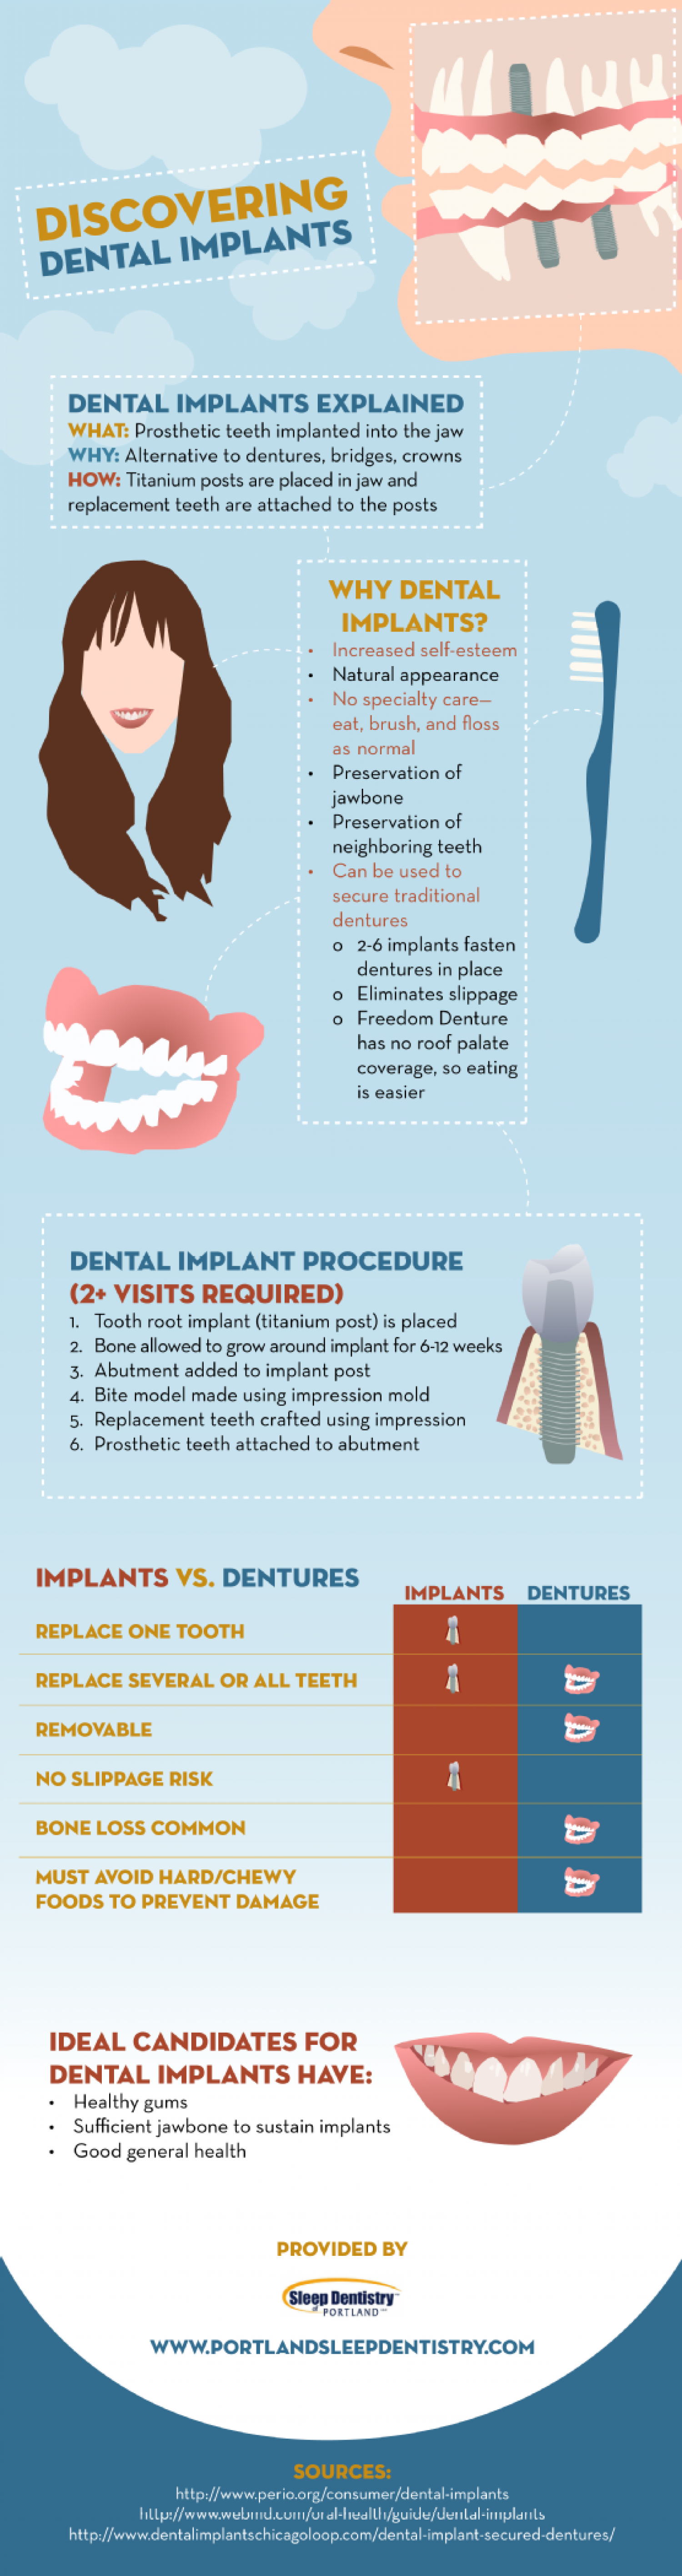 Discovering Dental Implants Infographic